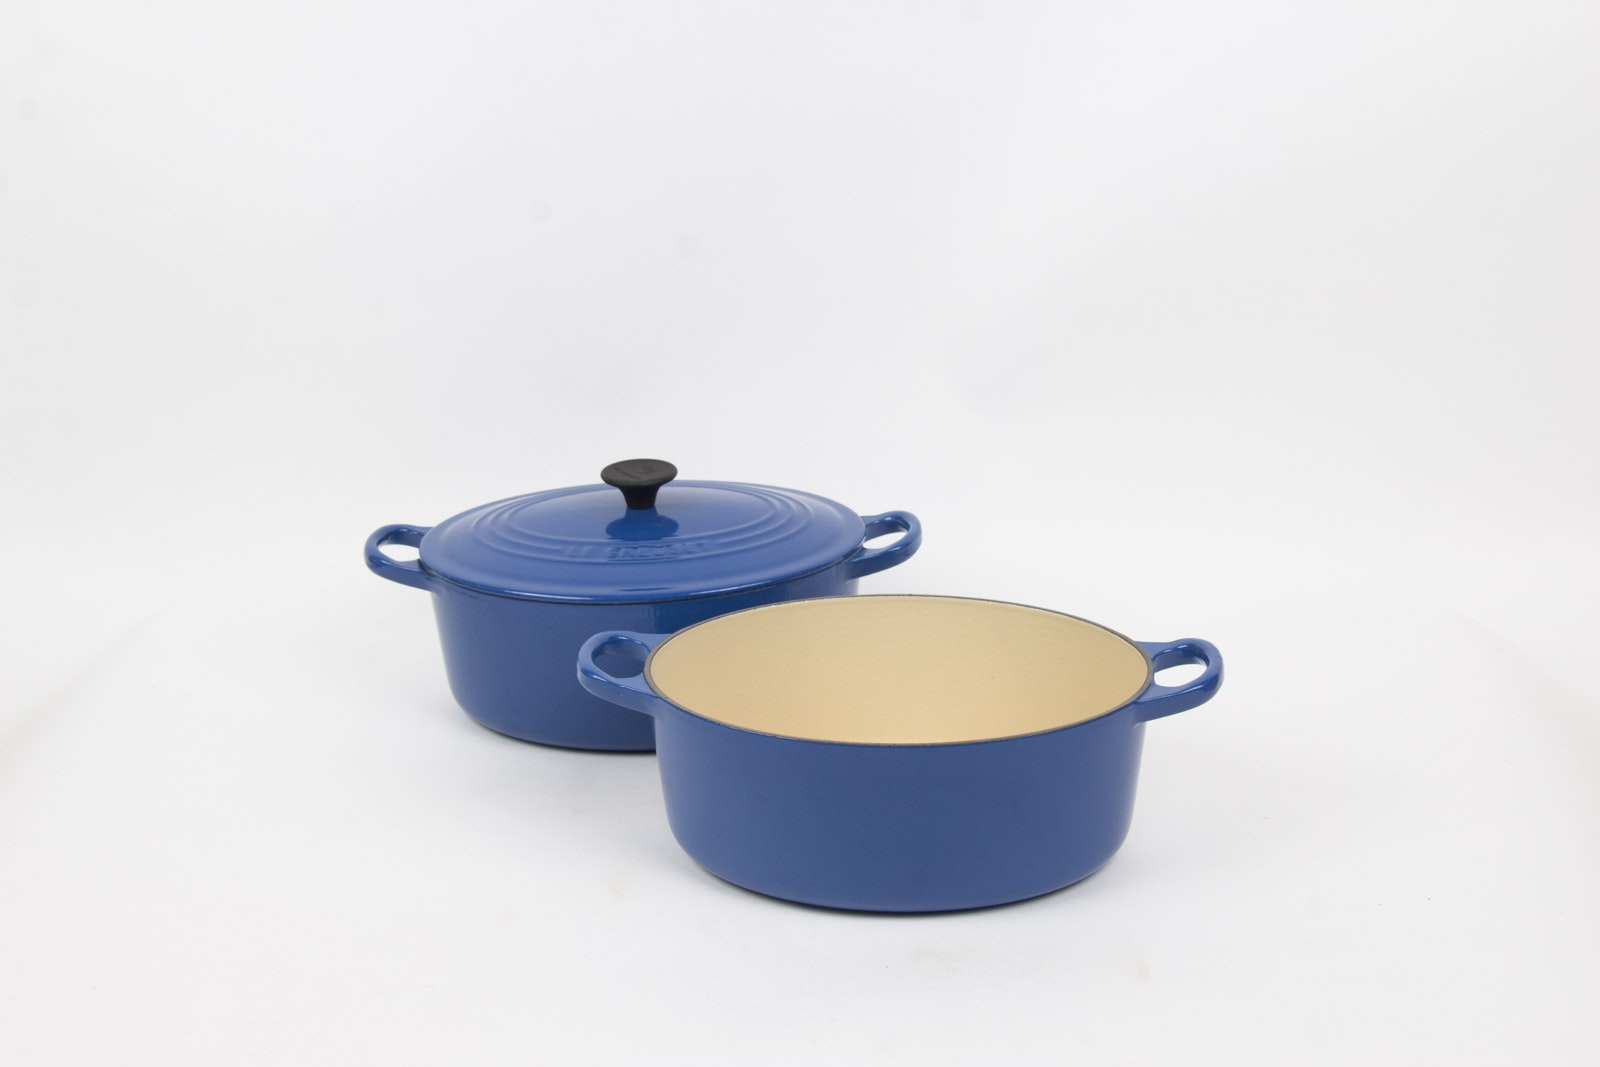 Blue Enamel over Cast Iron Dutch Oven Set By Le Creuset